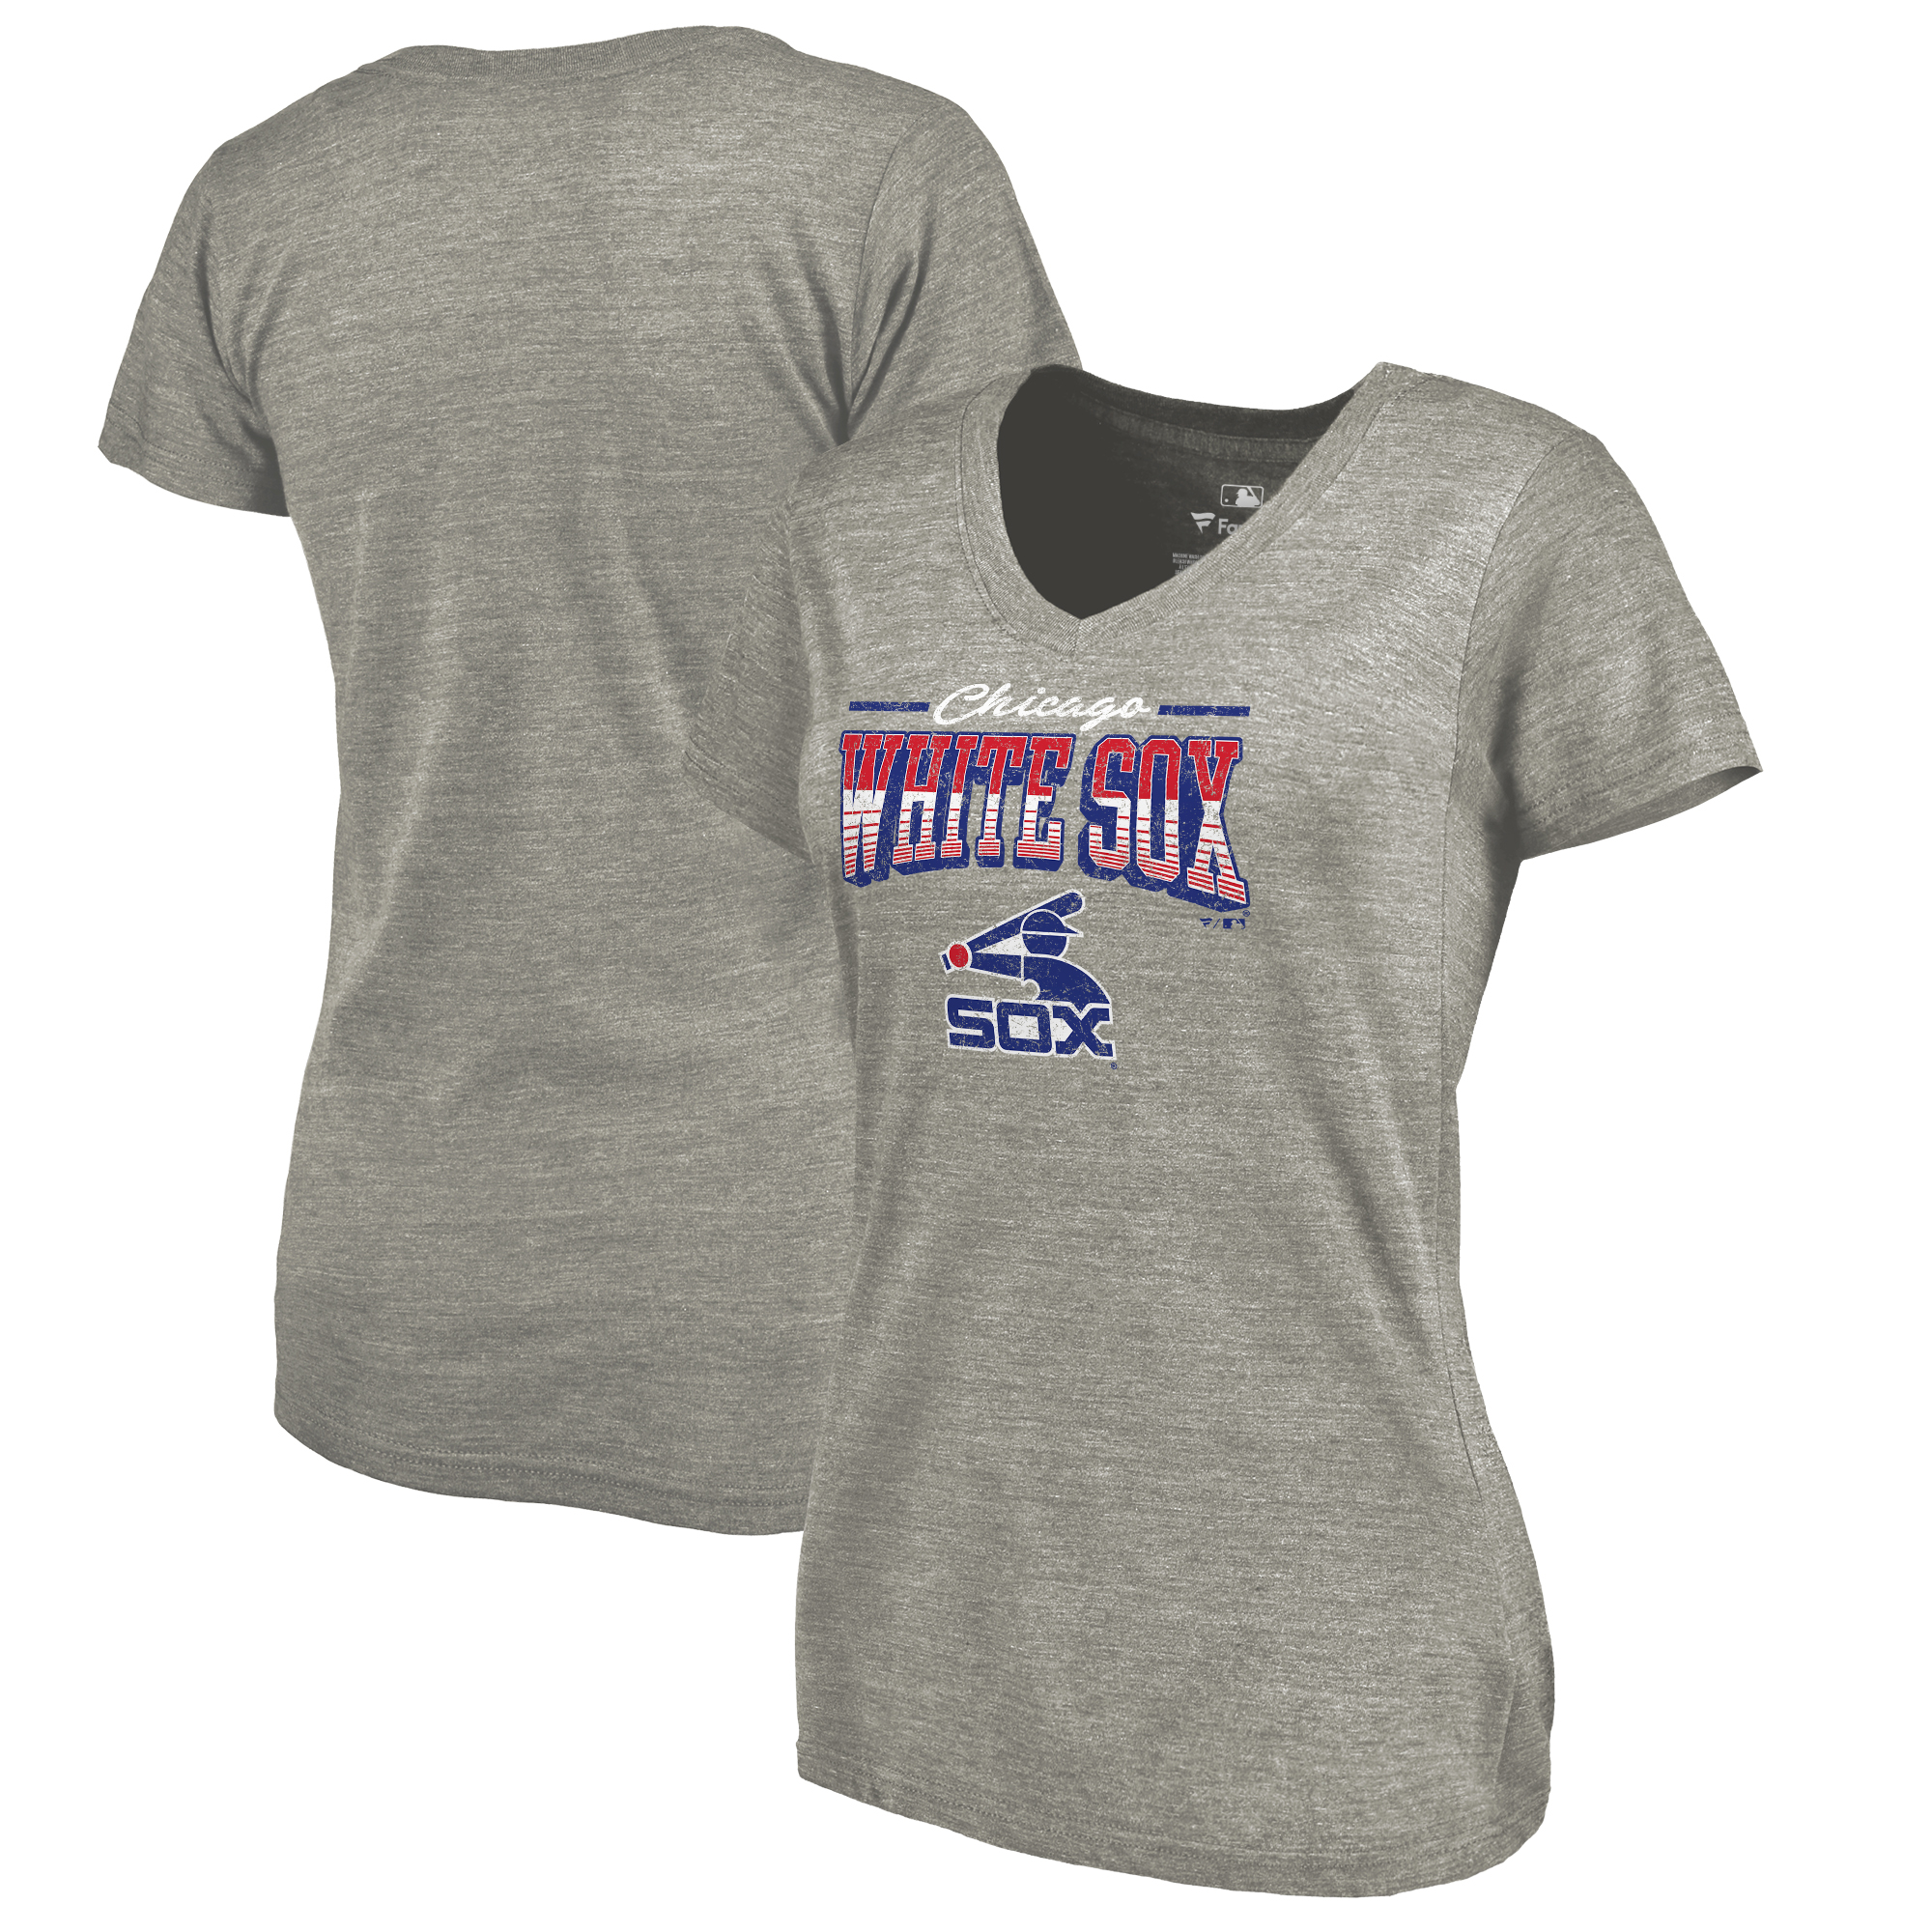 Chicago White Sox Fanatics Branded Women's Cooperstown Collection Season Ticket Tri-Blend V-Neck T-Shirt - Heathered Gray